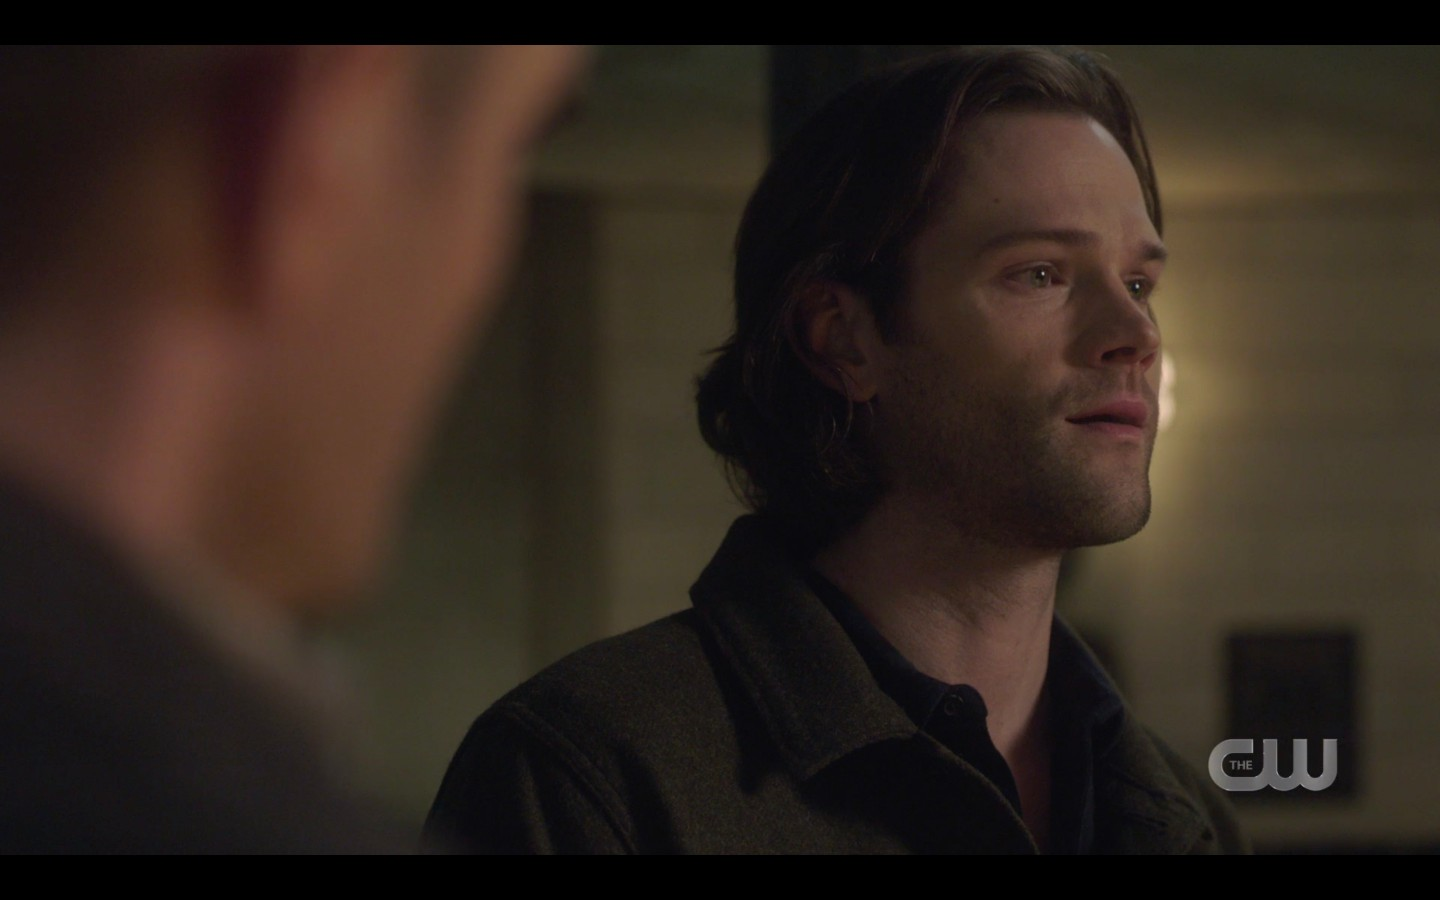 Sam Winchester to dean i guess it wasn't real spn 1415